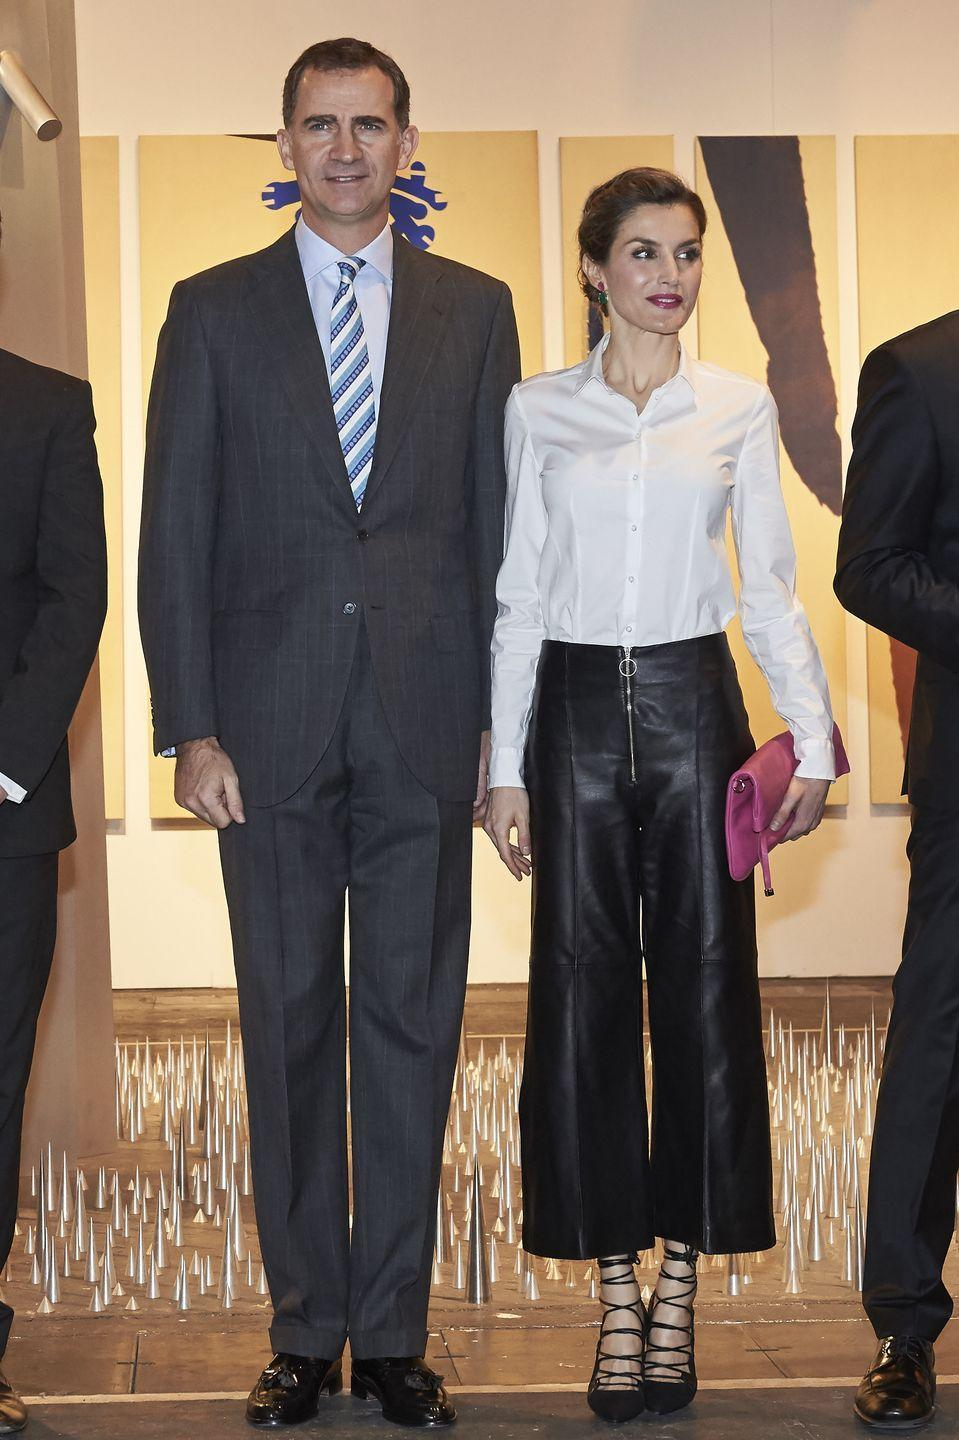 <p>You read that correctly. Queen Letizia of Spain has worn pants —leather pants, to be specific — for public appearances. She's never been afraid to be a little — okay, a lot — fashion-forward. And though we're not positive exactly what hidden message she's sending, any woman who can rock leather pants like she does deserves a crown, in our humble opinions. </p>